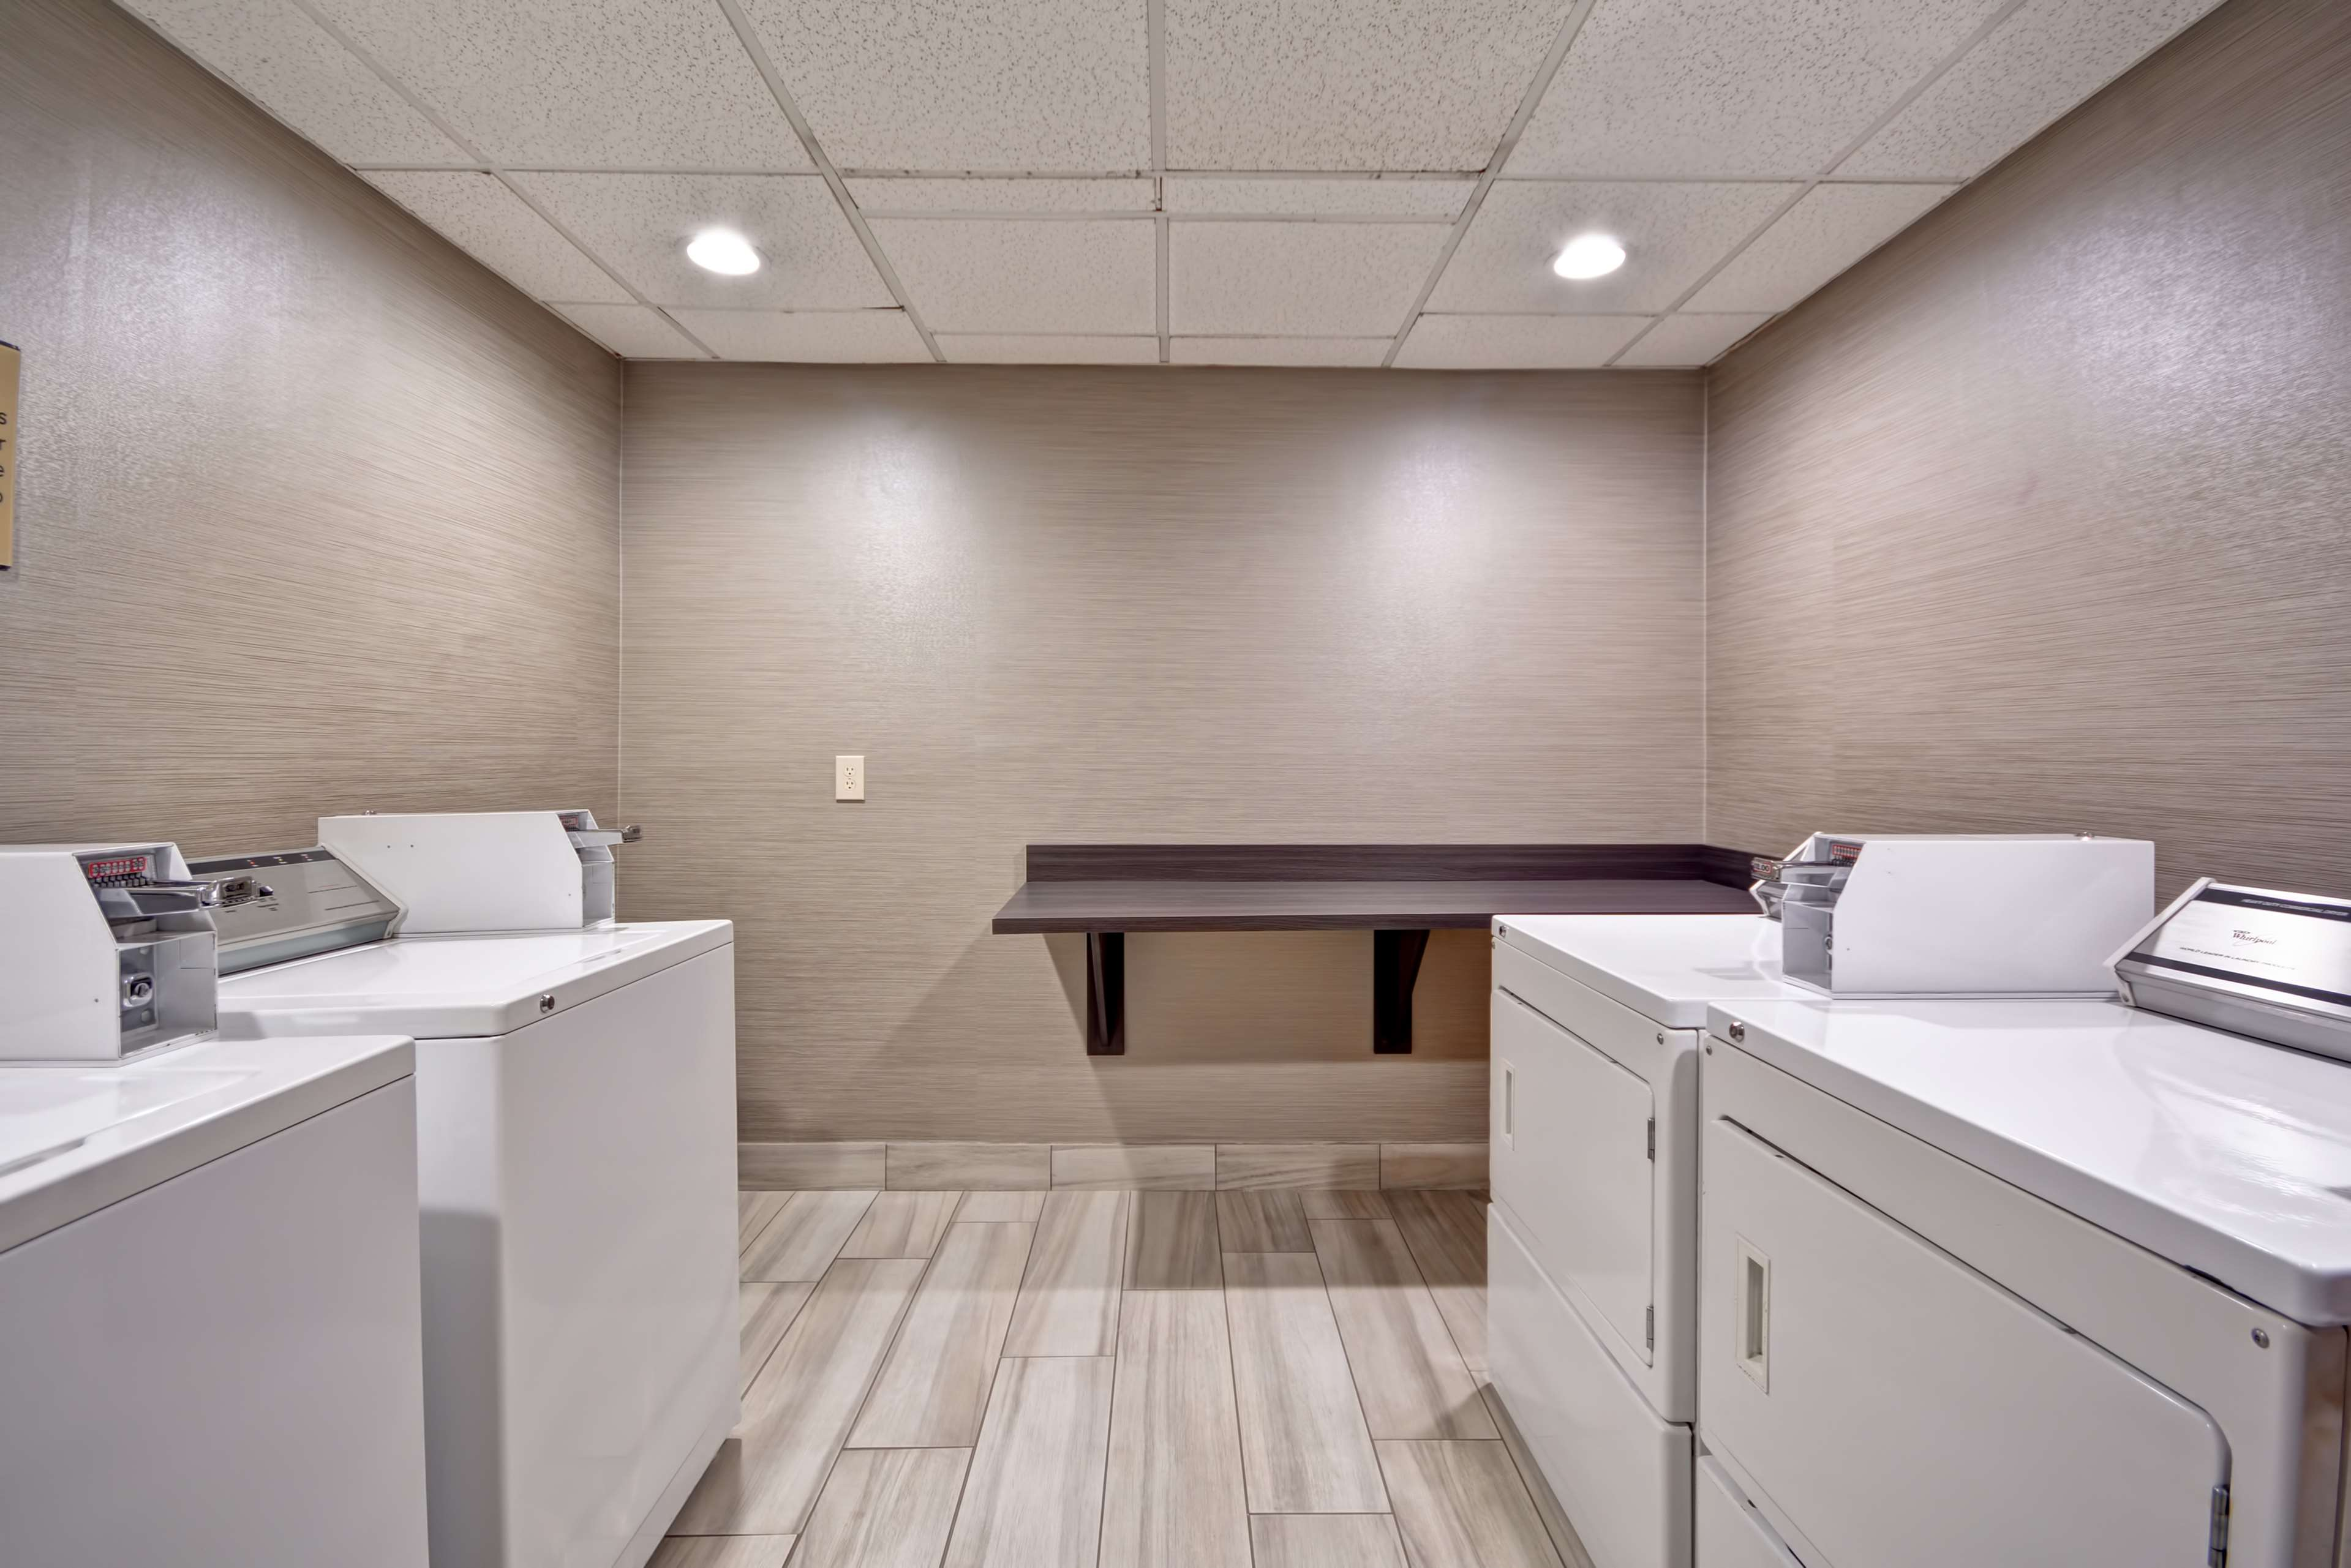 Homewood Suites by Hilton Dallas-Lewisville image 44